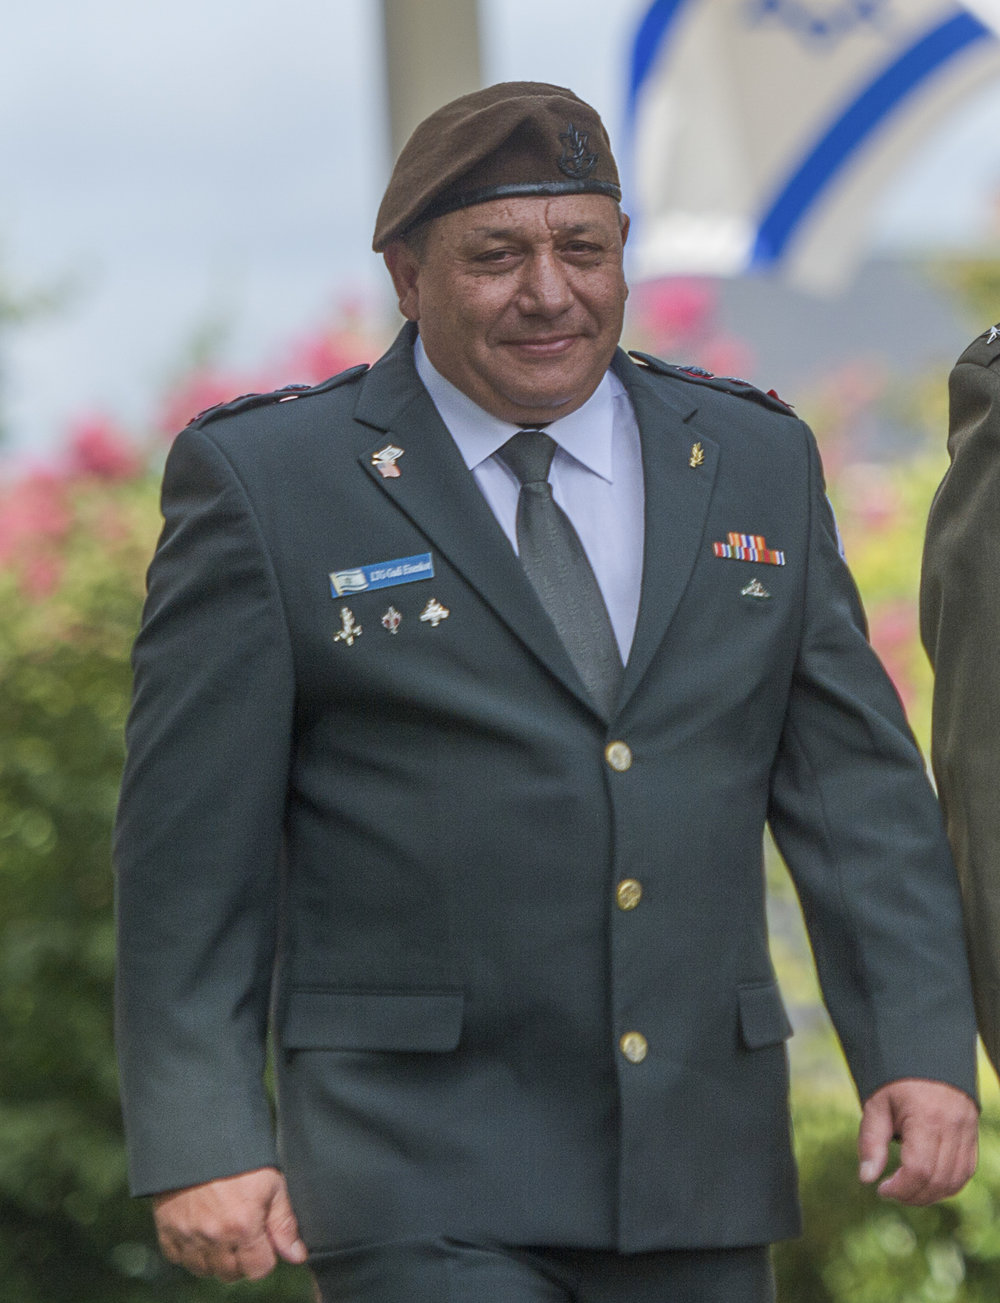 IDF Chief of Staff Lt. Gen. Gadi Eizenkot. Credit: Chairman of the Joint Chiefs of Staff.